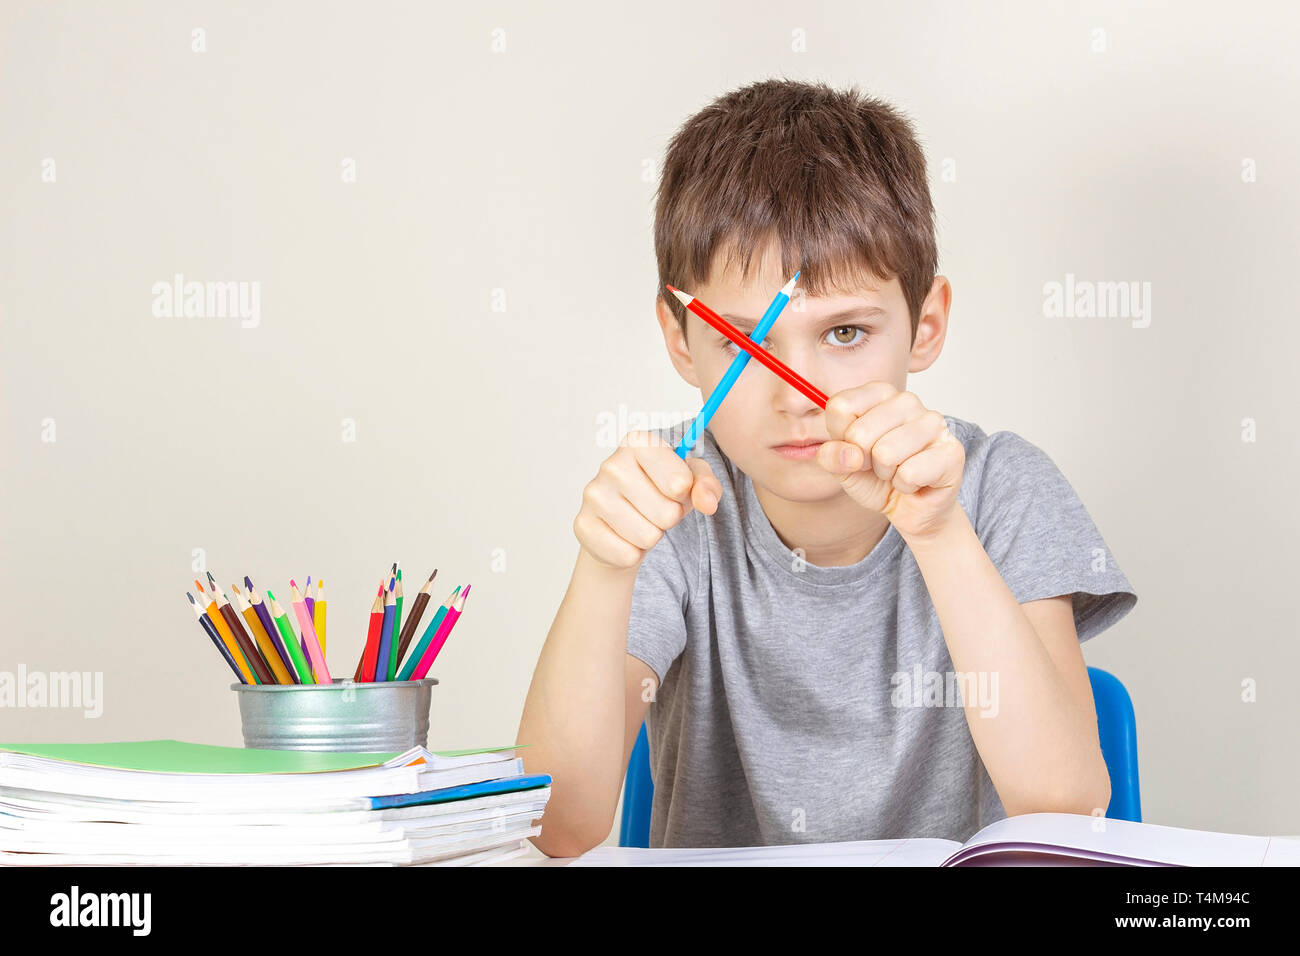 Sad angry boy have difficulties doing homework. - Stock Image